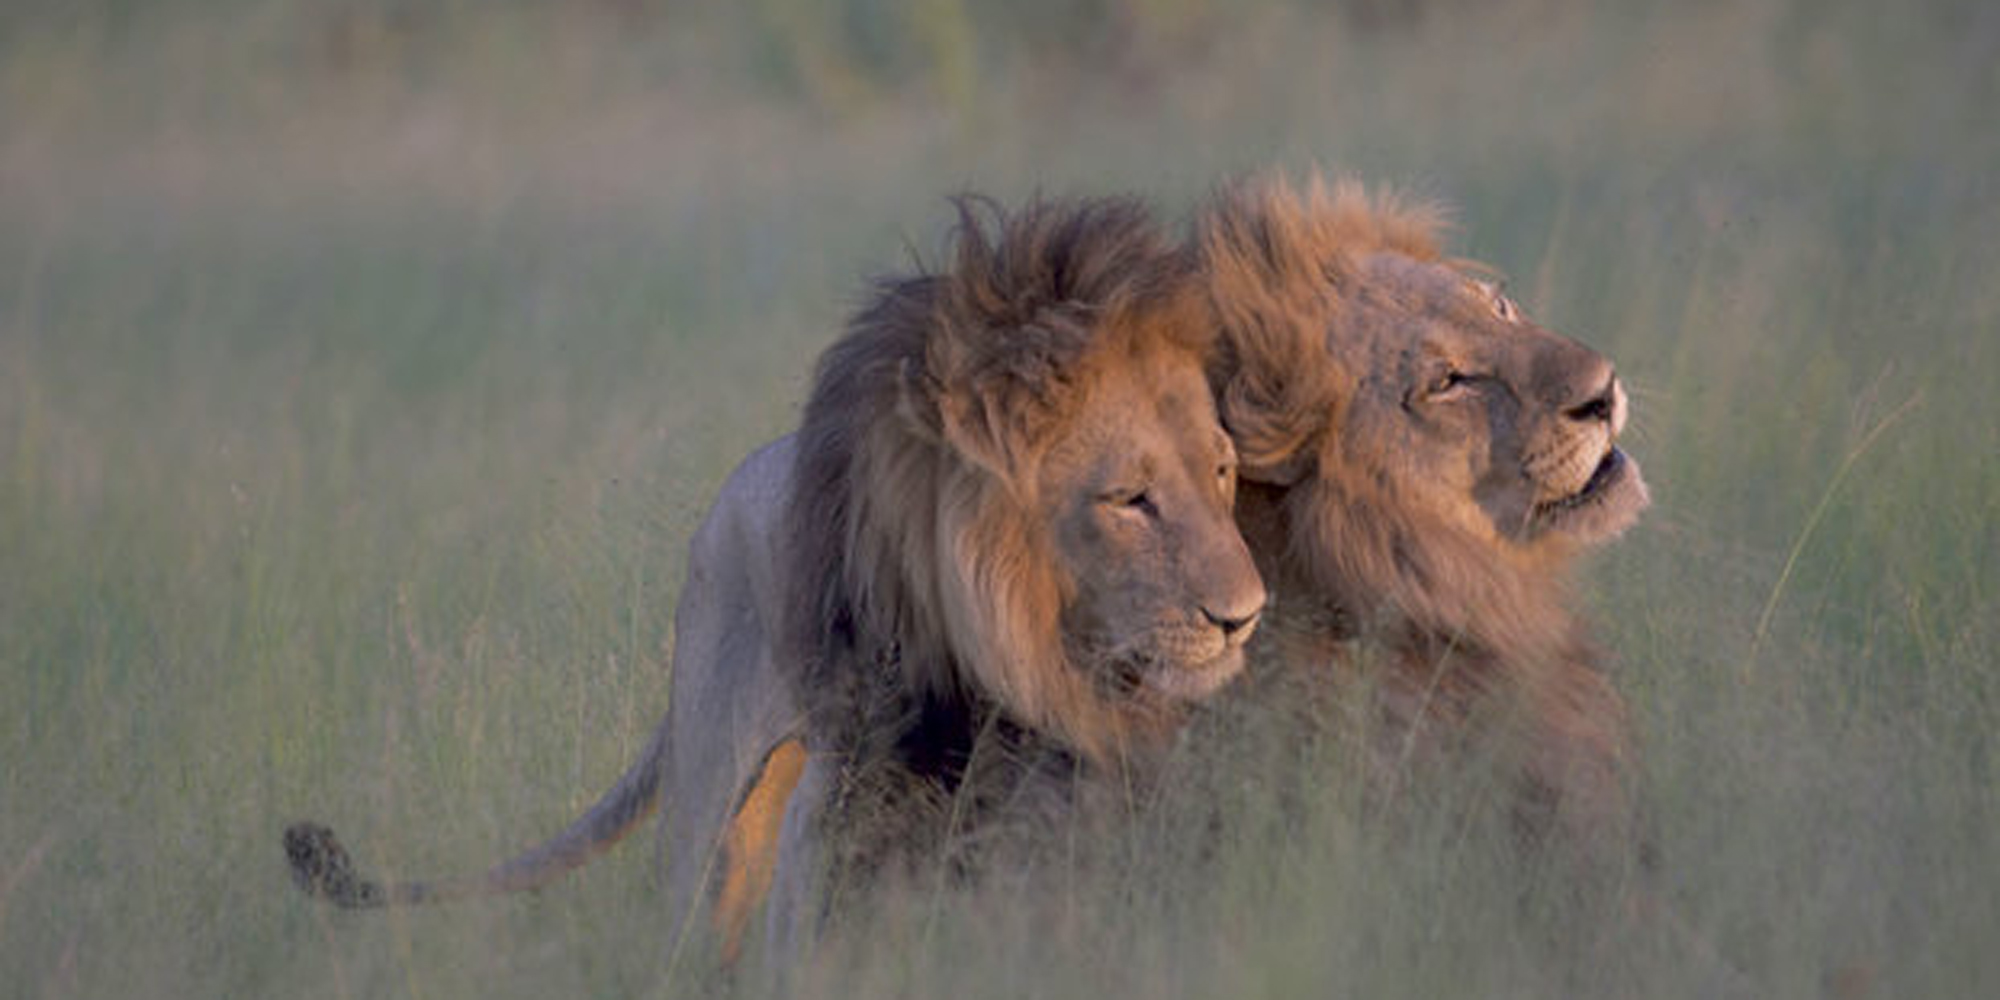 Gay Animal Couples - Can Animals Be Gay?